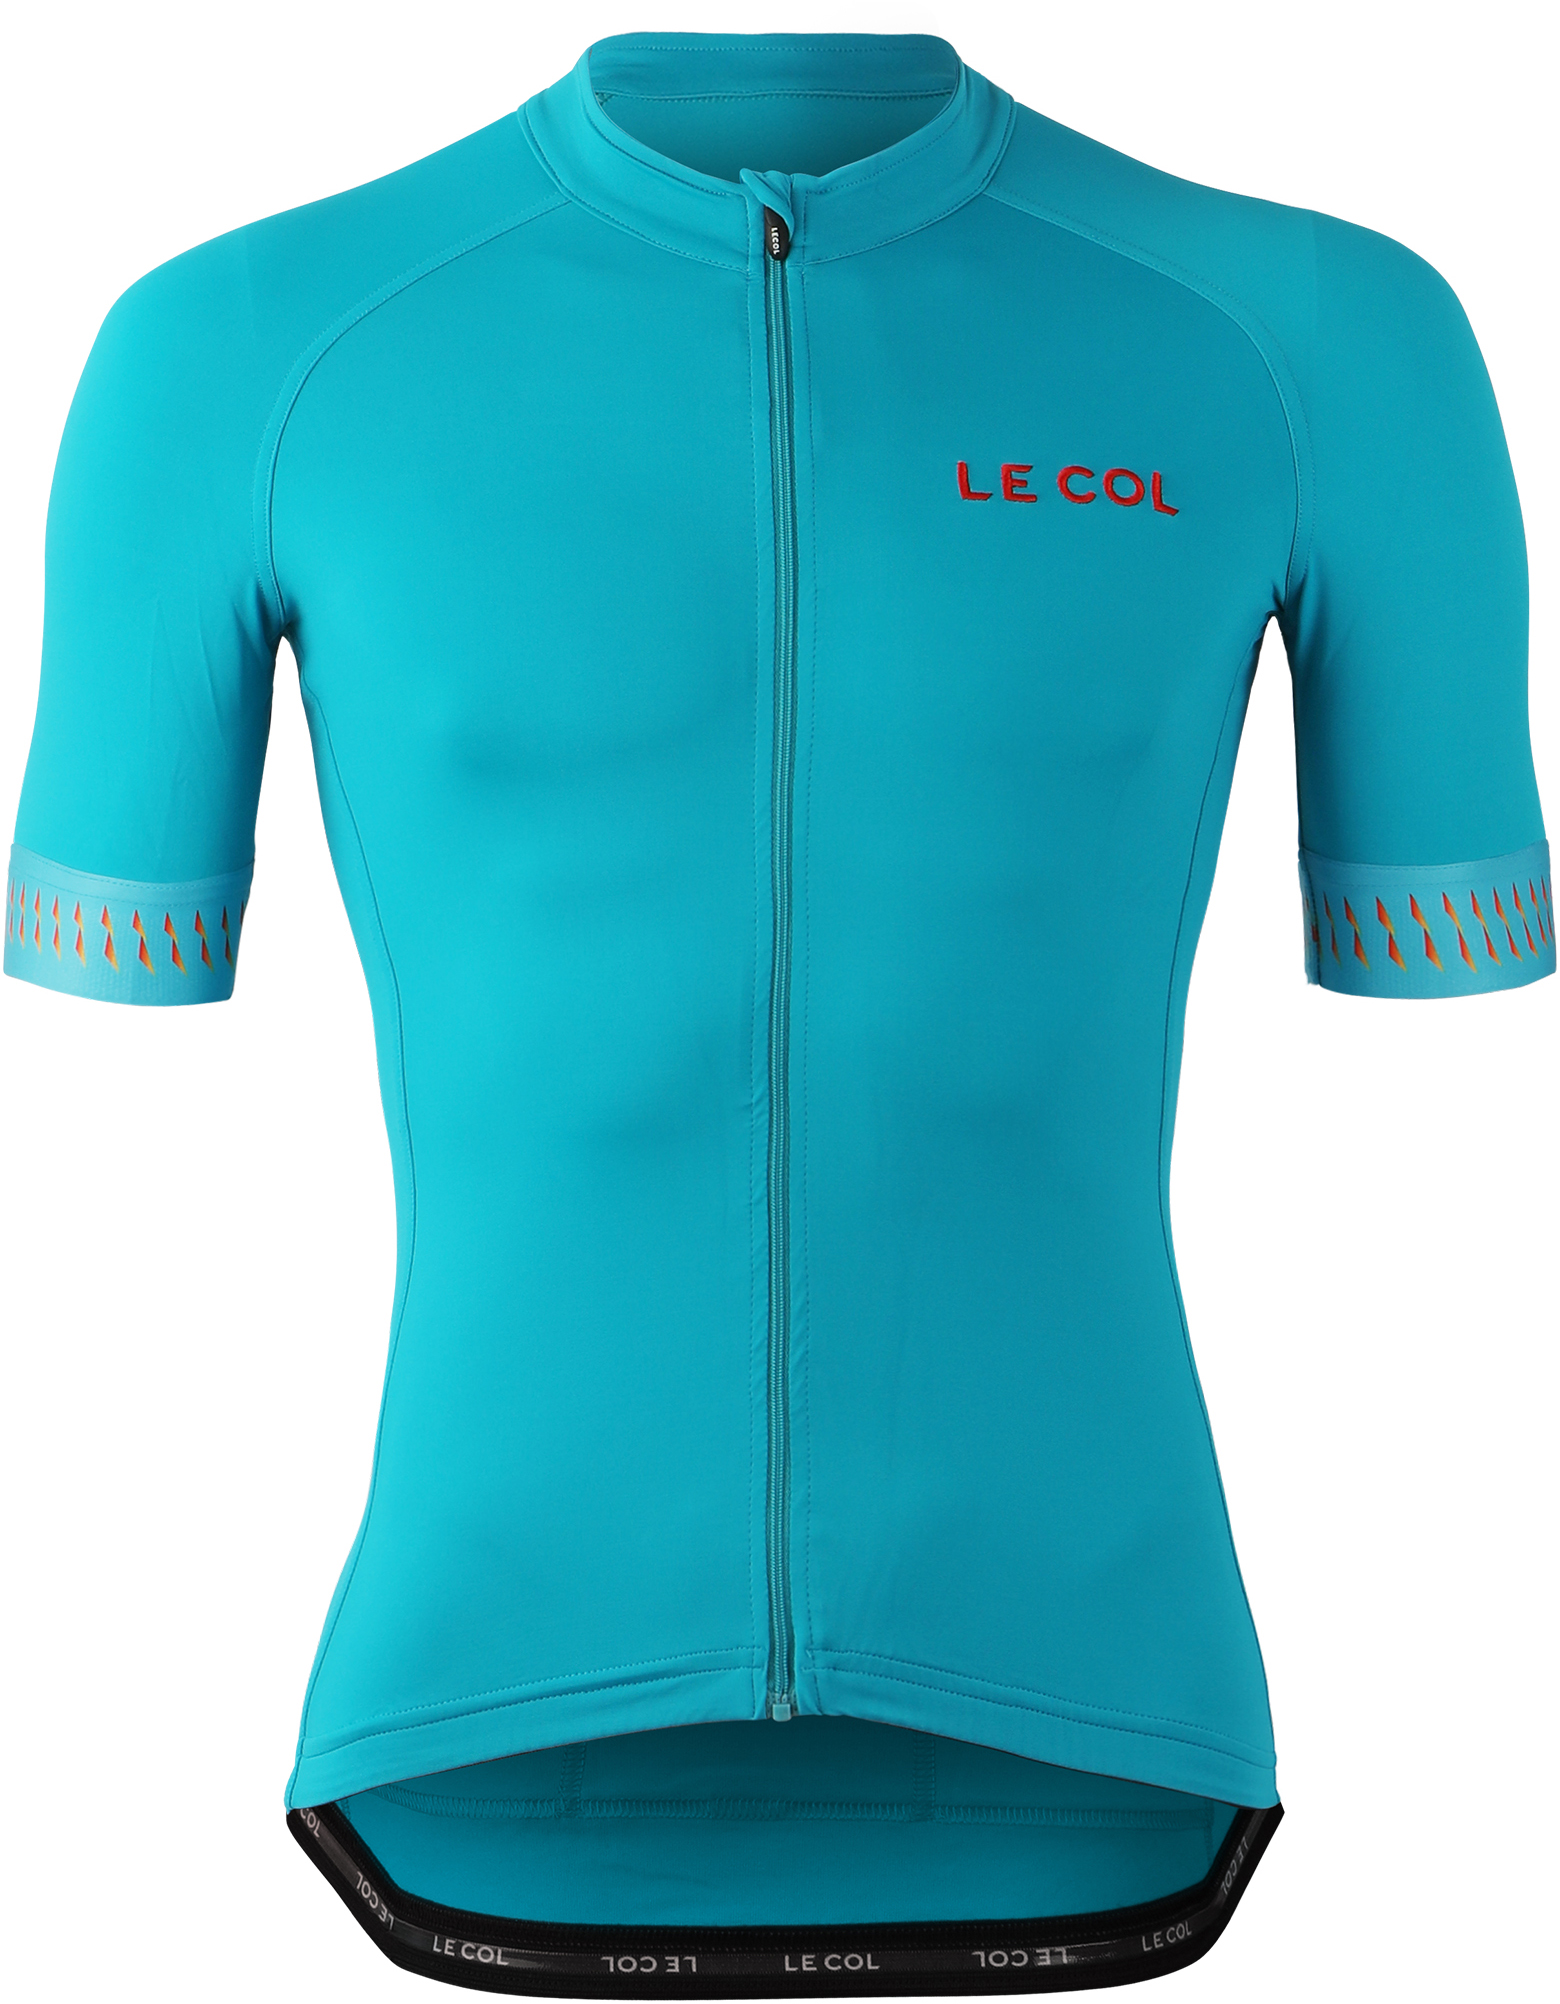 Le Col Exclusive Pro Jersey | Jerseys